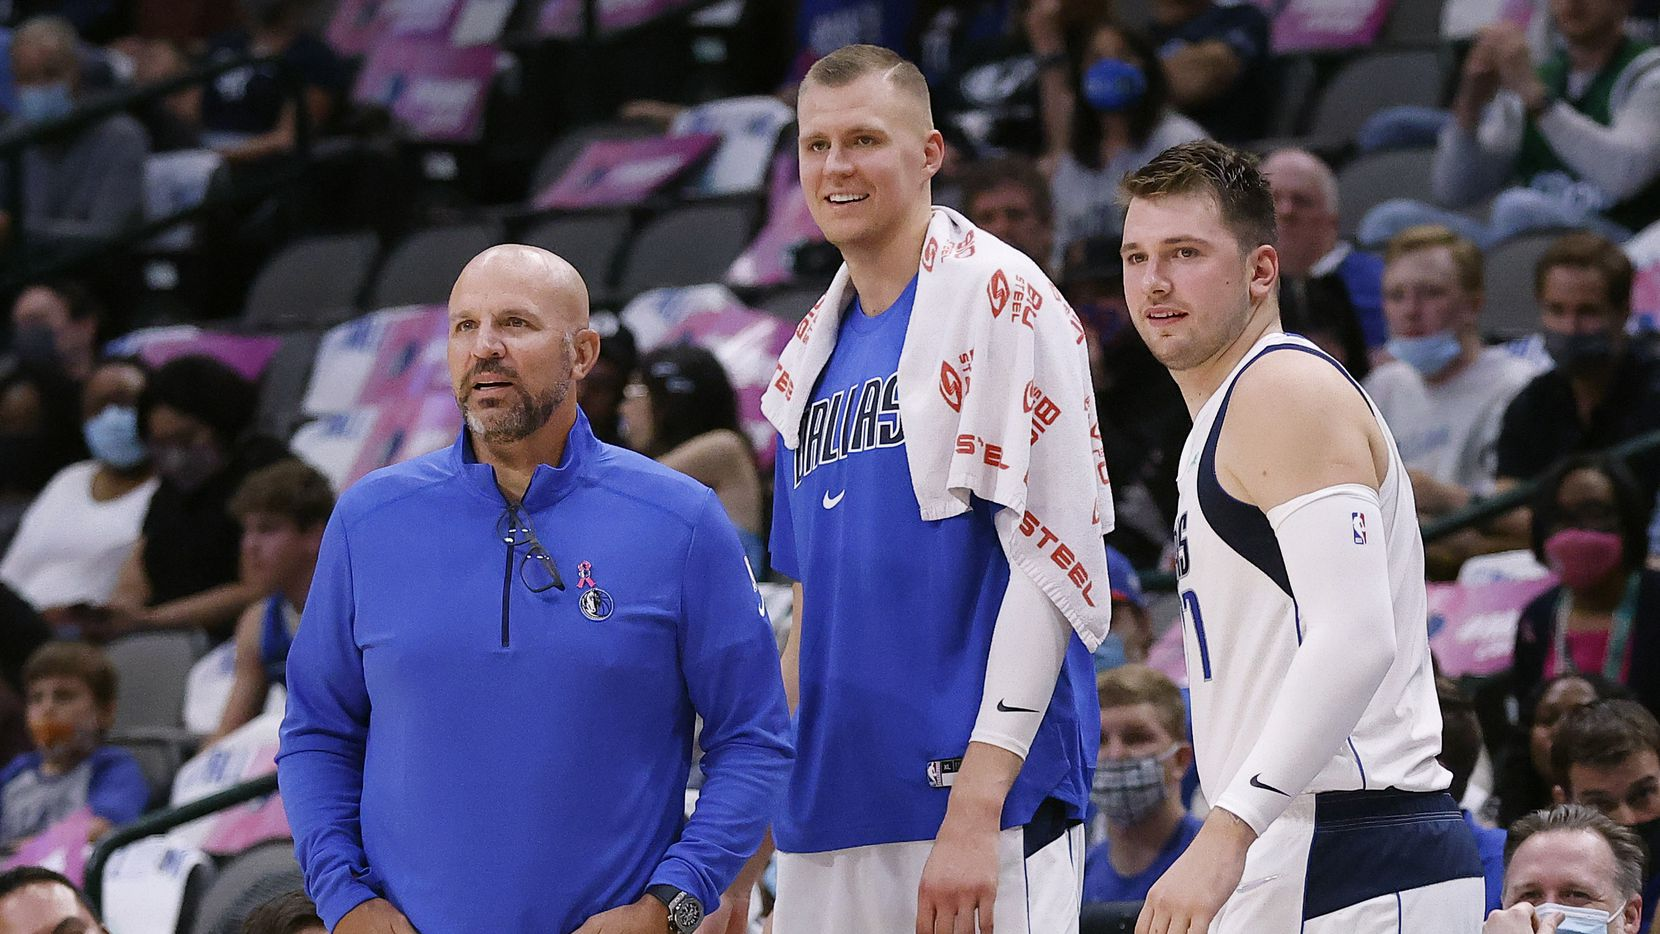 Dallas Mavericks head coach Jason Kidd, center Kristaps Porzingis (center) and guard Luka Doncic watch from the scorers table as the team competes against the Utah Jazz in the first half at the American Airlines Center in Dallas, Wednesday, October 6, 2021.